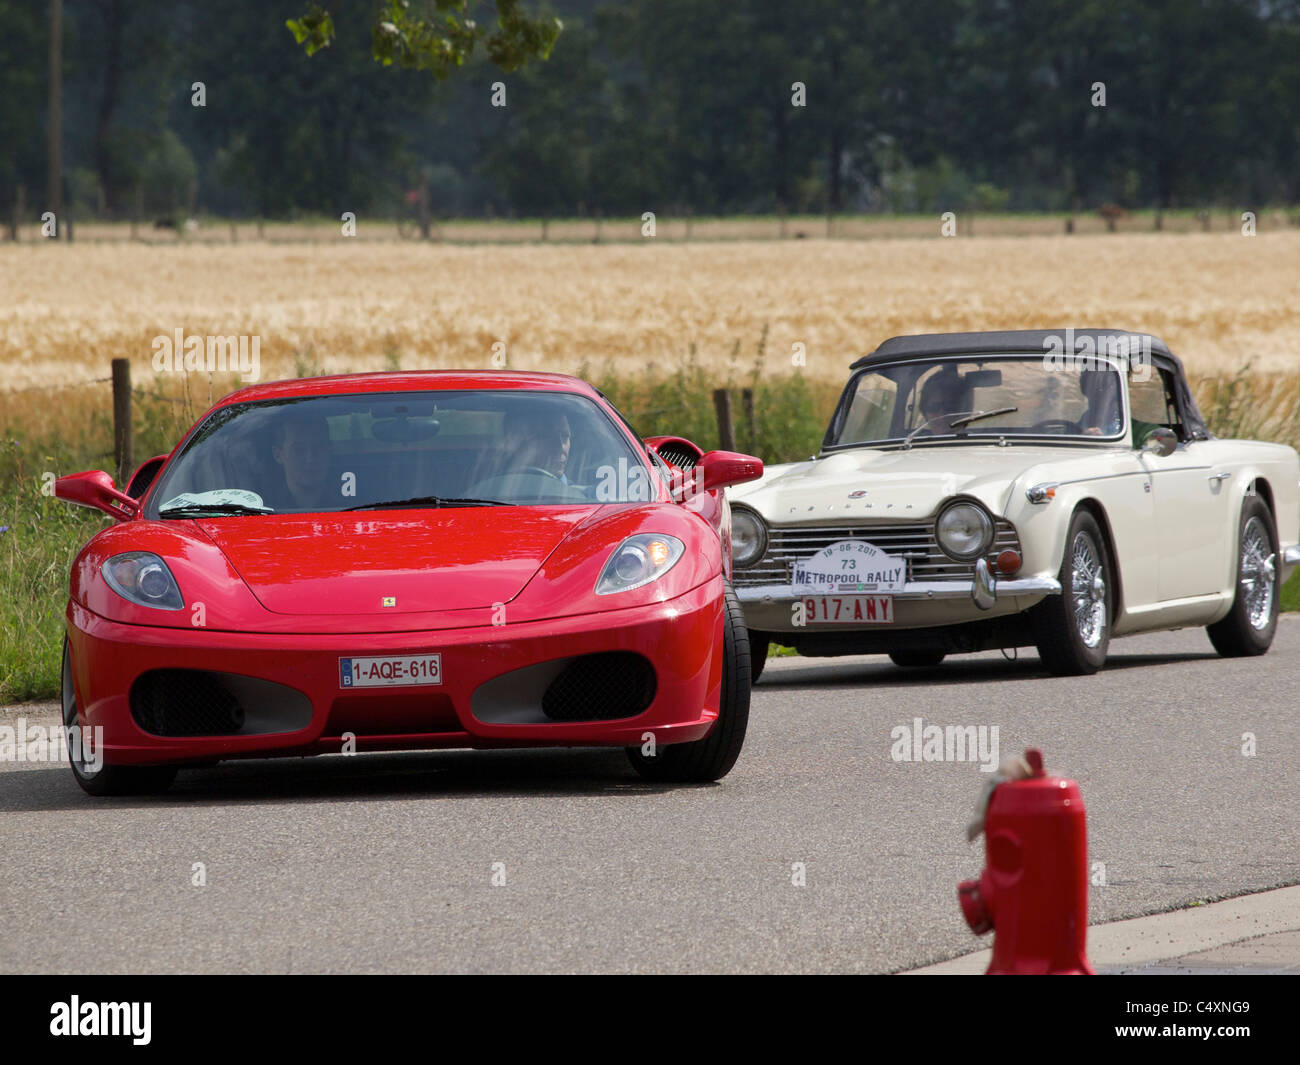 Modern Ferrari F430 and vintage Triumph TR4A sportscars at a classic car rallye in Belgium - Stock Image